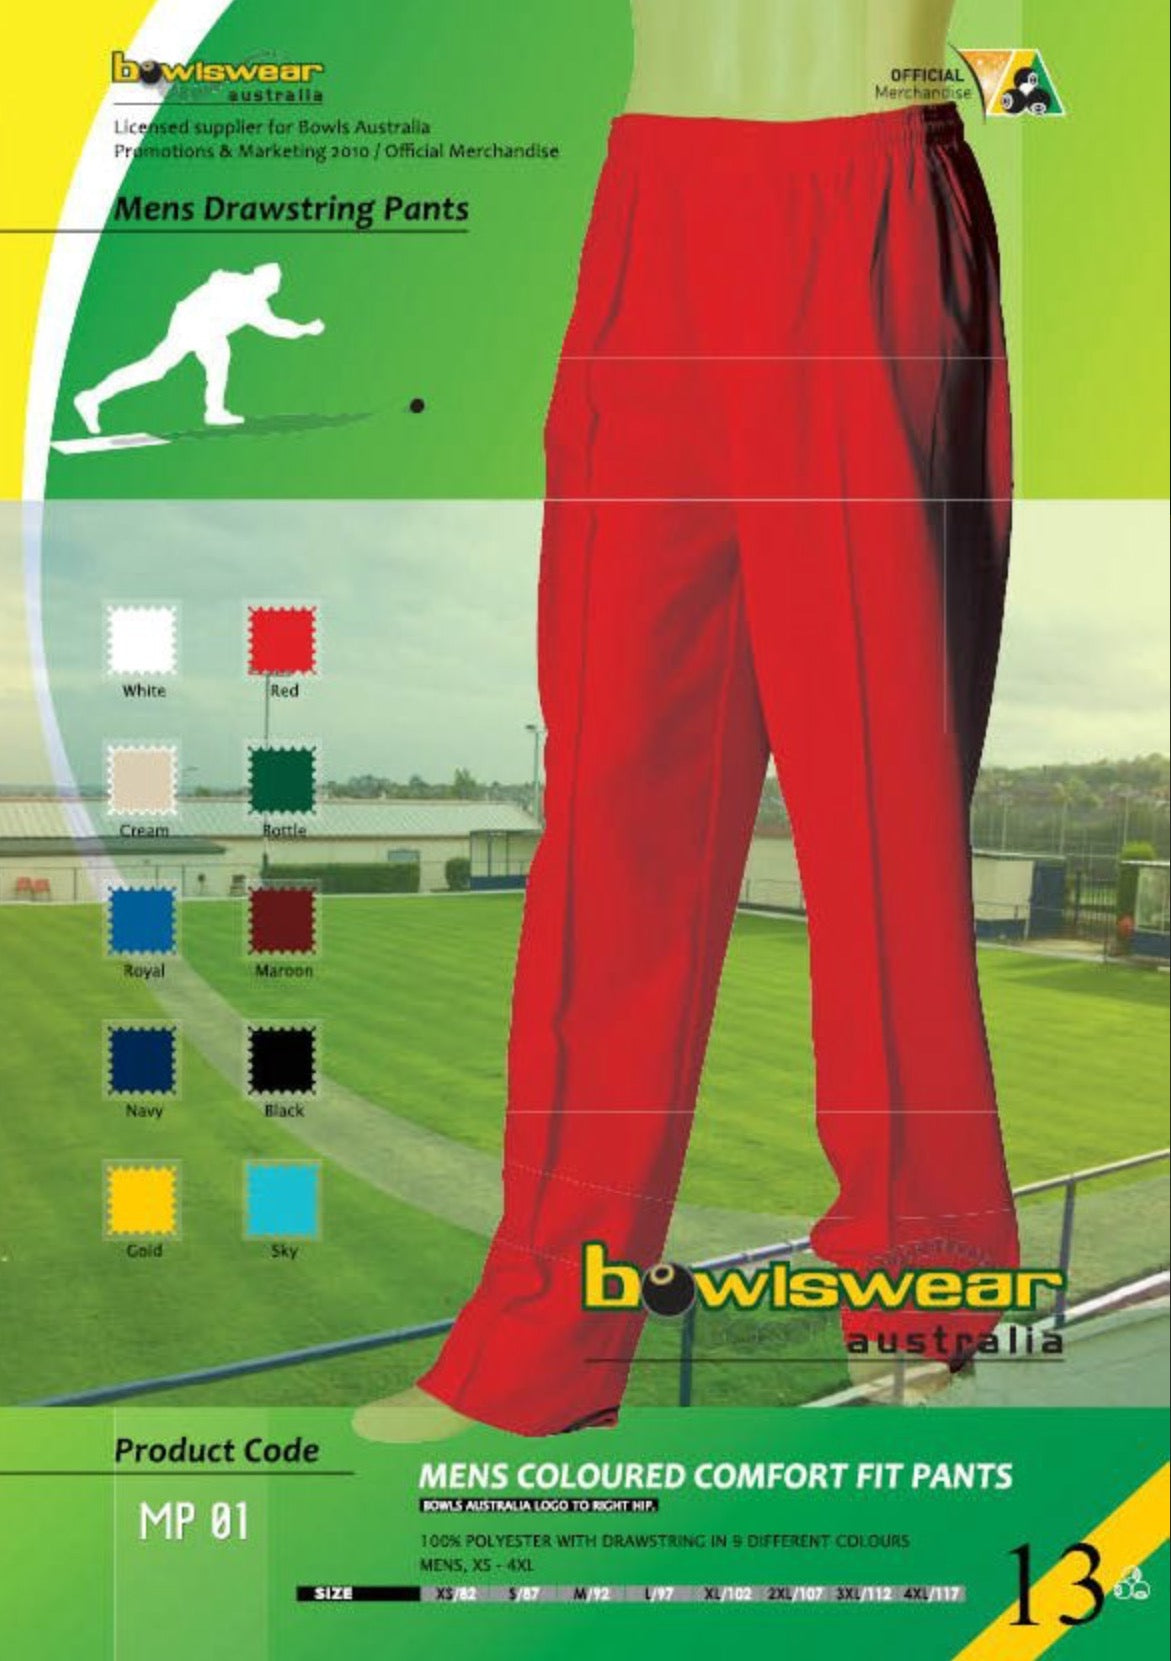 Men's Bowlswear Australia Drawstring Pants